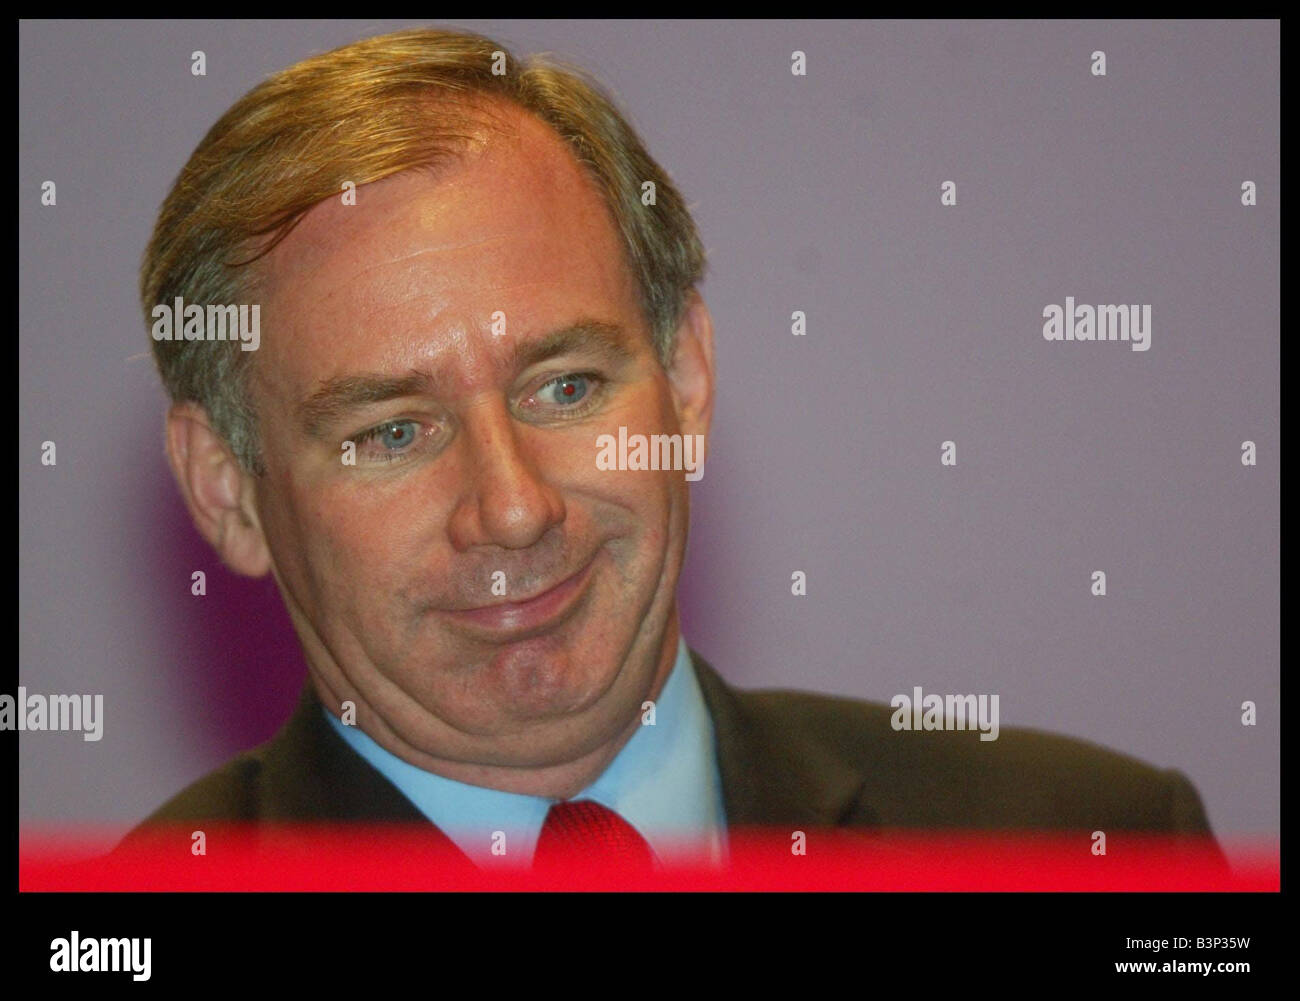 Secretary of State for Defence Geoff Hoon speech at the Labour Party Conference in Bournemouth October 2003 - Stock Image